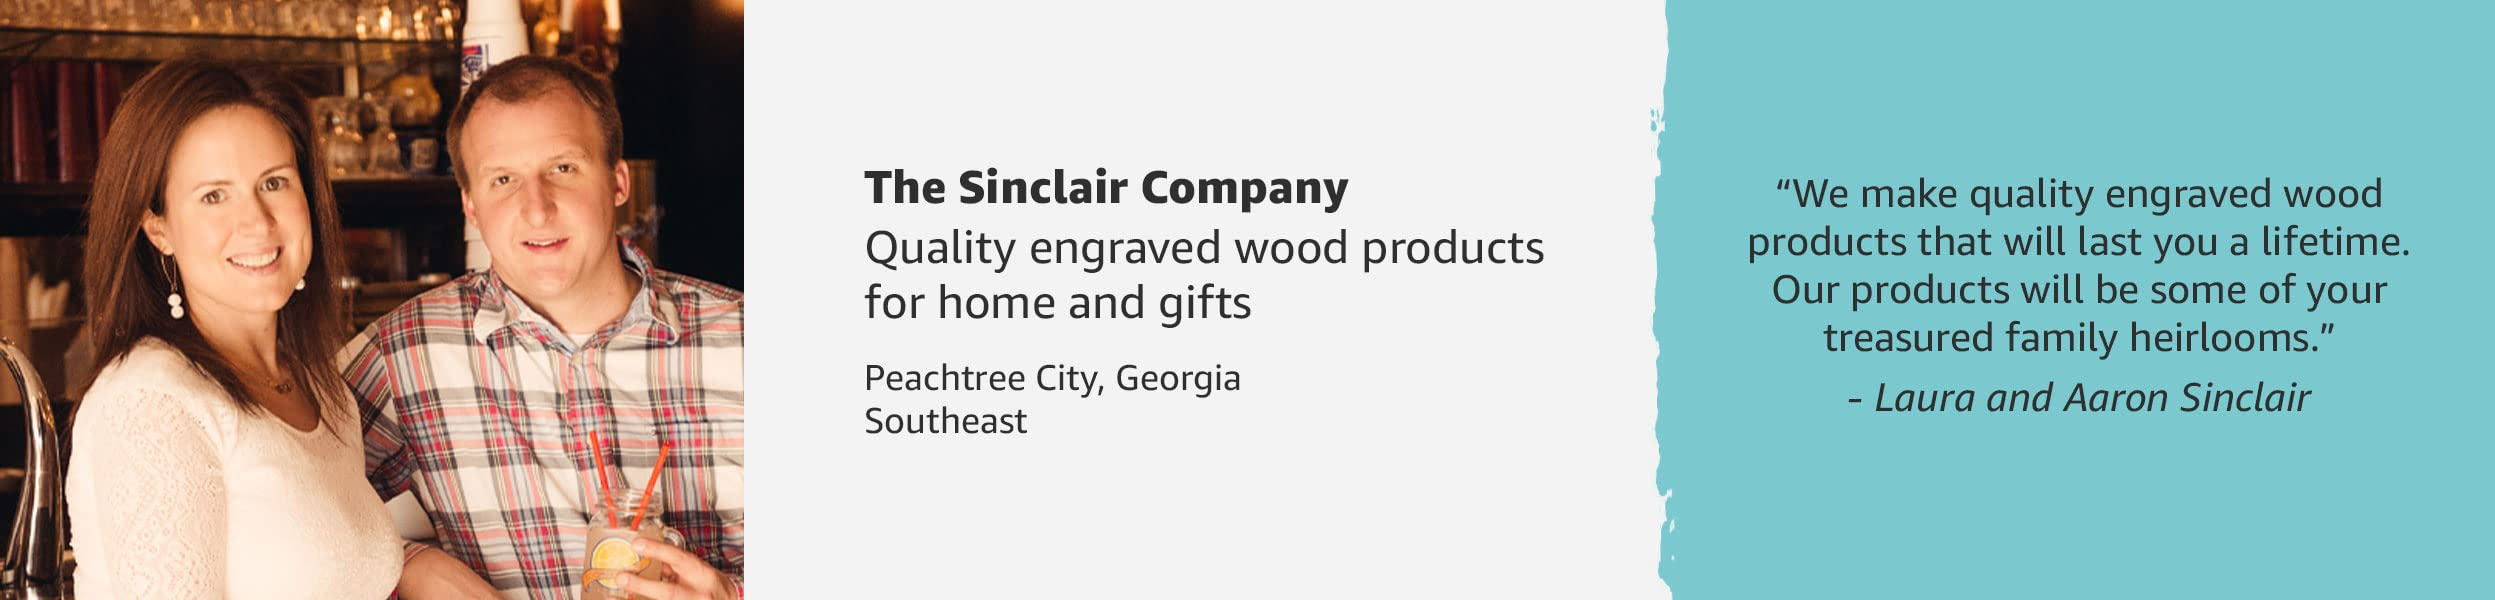 The Sinclair Company